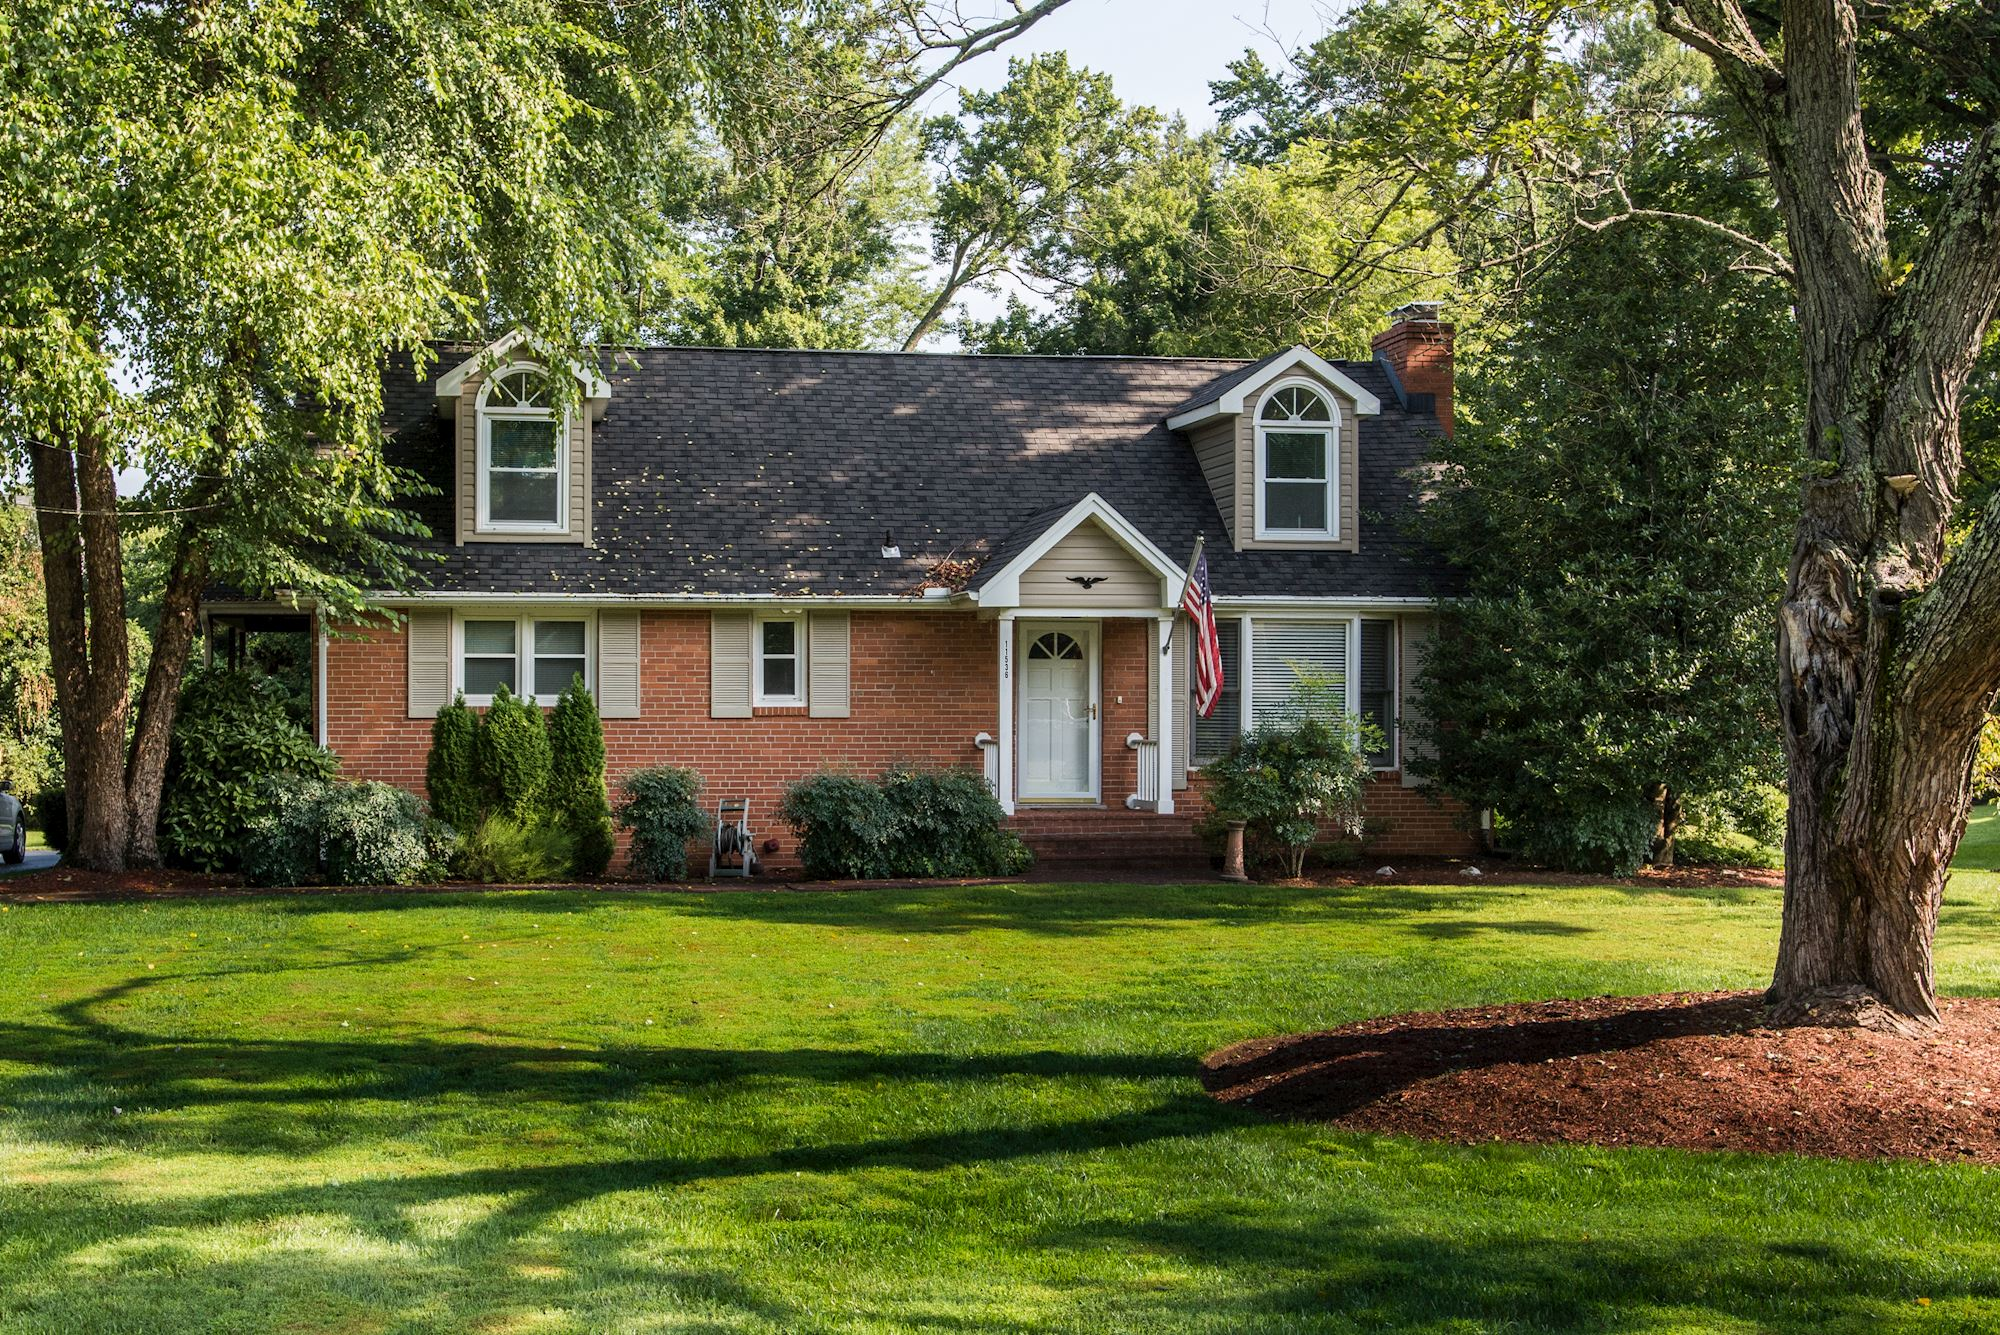 NEW LISTING: Single Family 3 BD Home in Heart of Fairfax, VA